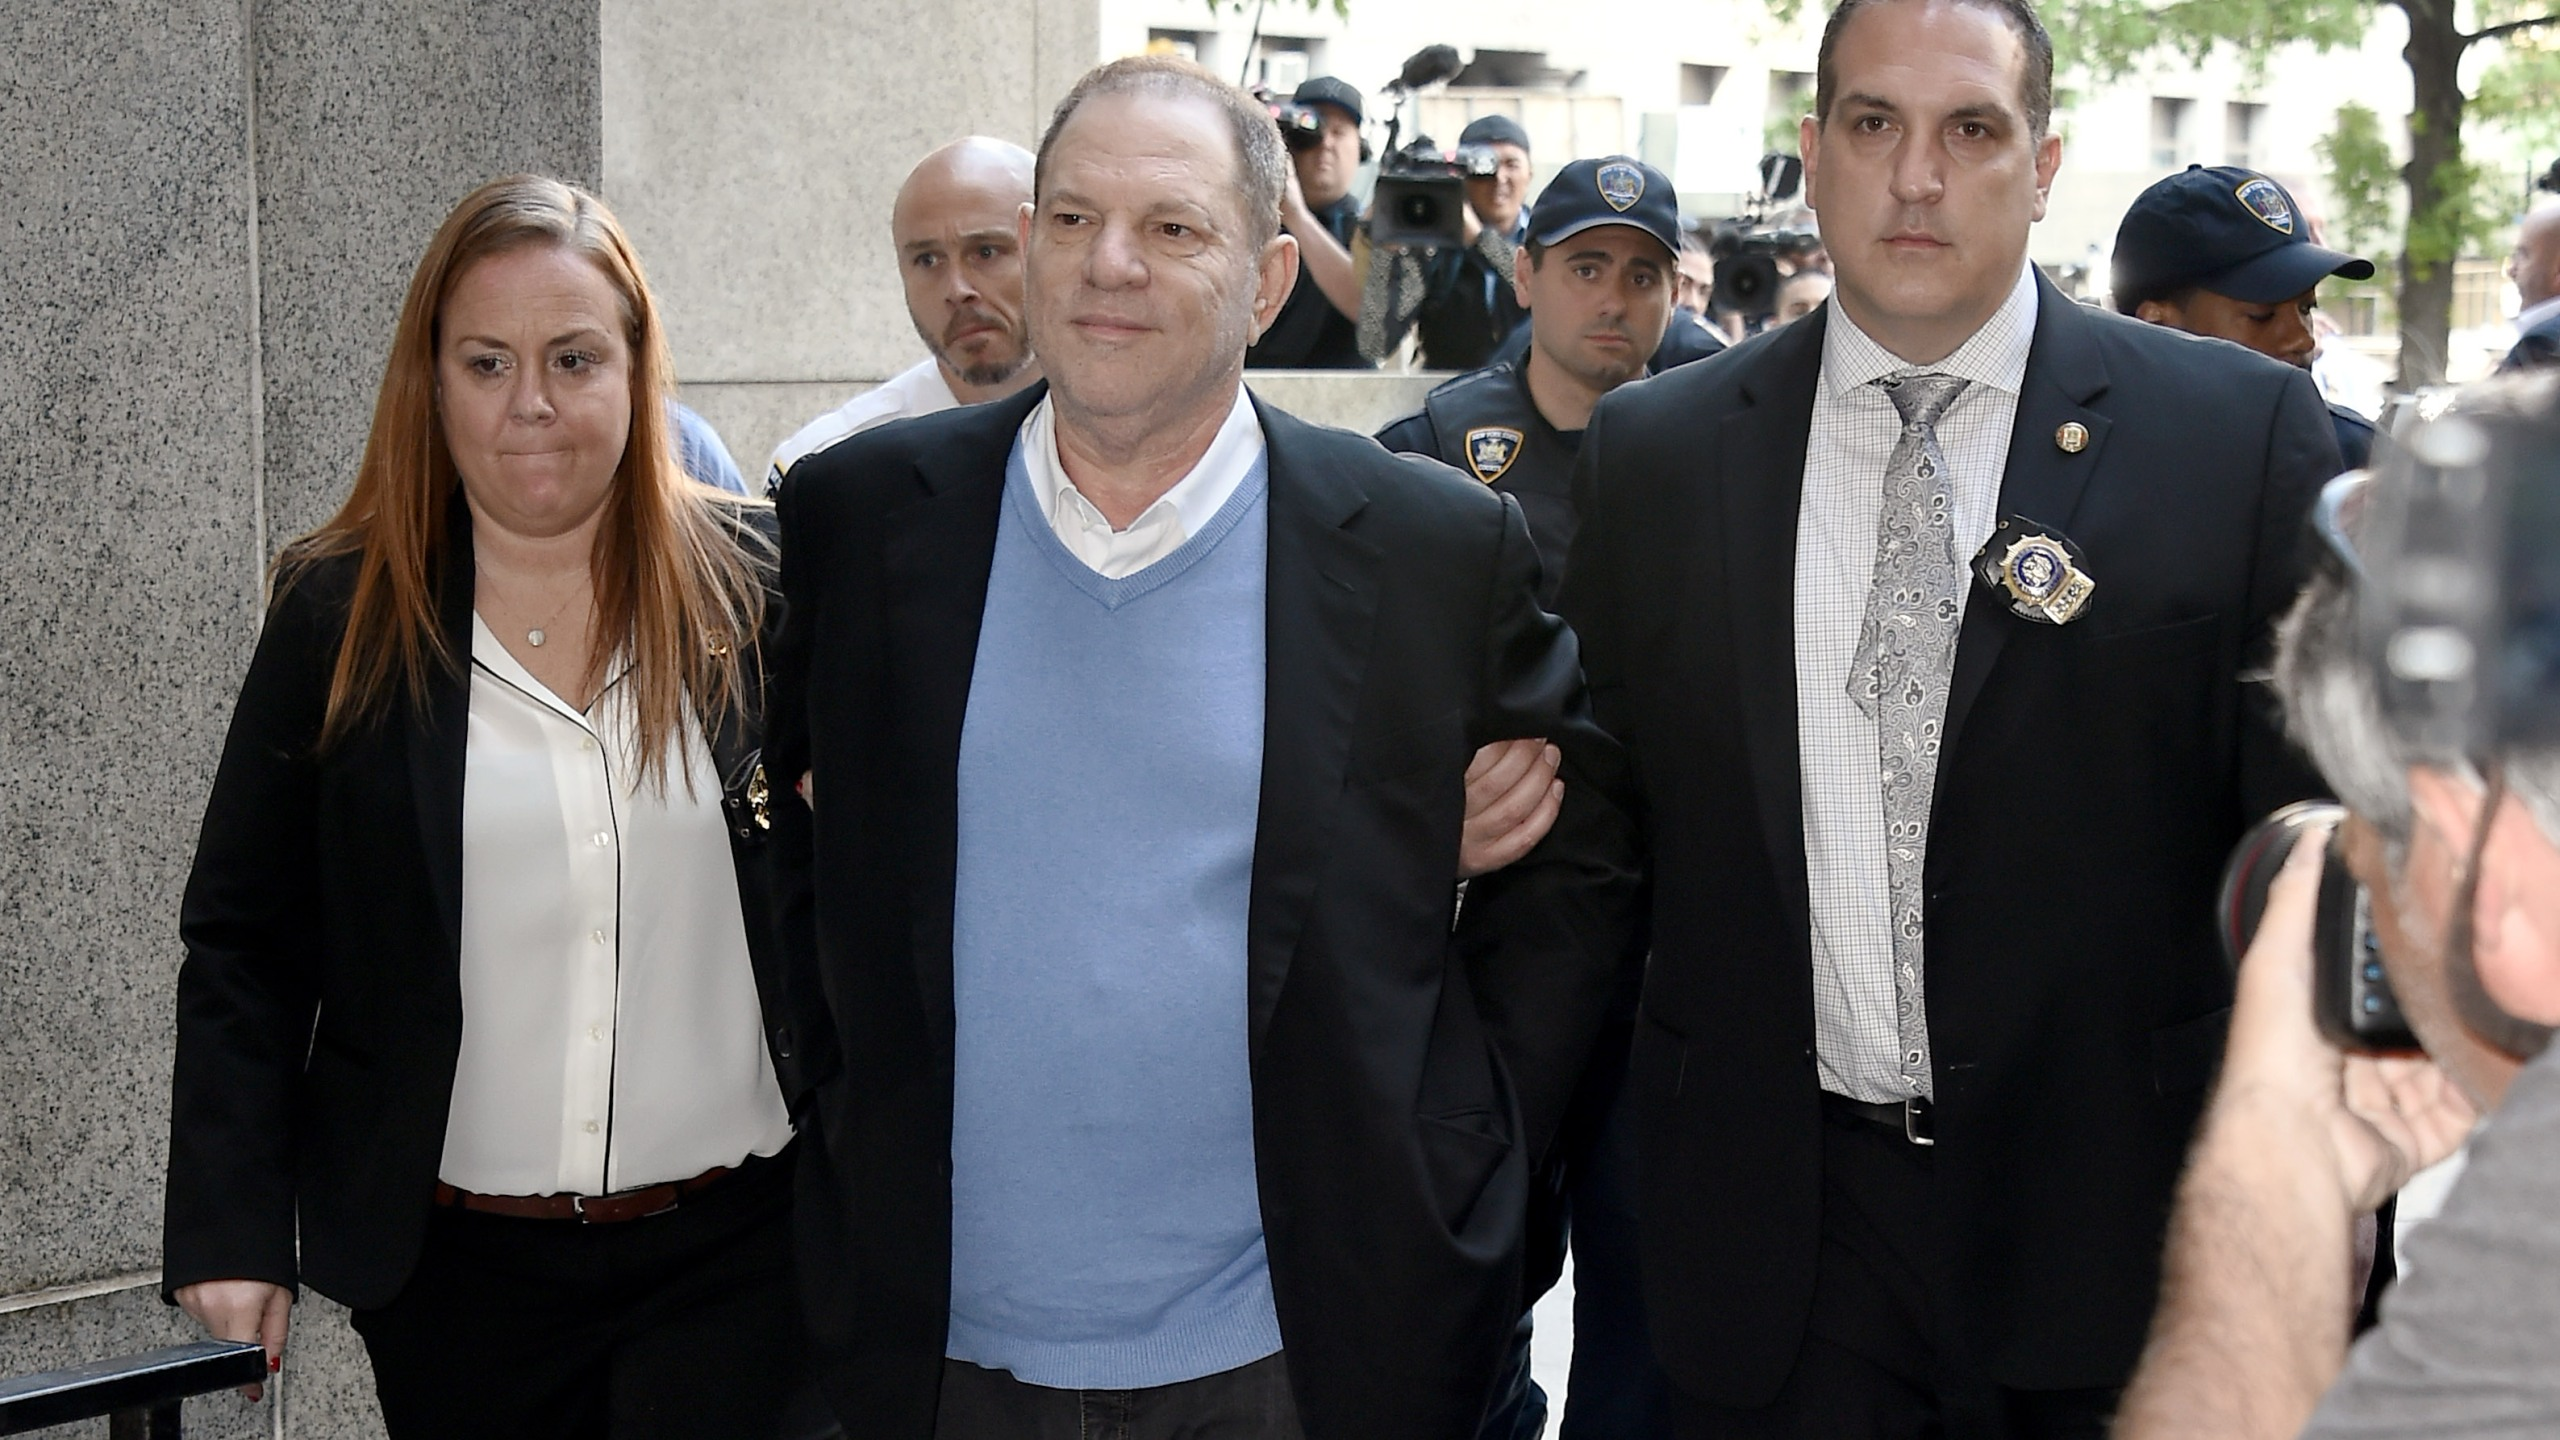 Harvey Weinstein arrives for arraignment at Manhattan Criminal Courthouse on May 25, 2018 after being arrested and processed on charges of rape, committing a criminal sex act, sexual abuse and sexual misconduct.(Credit: Steven Ferdman/Getty Images)